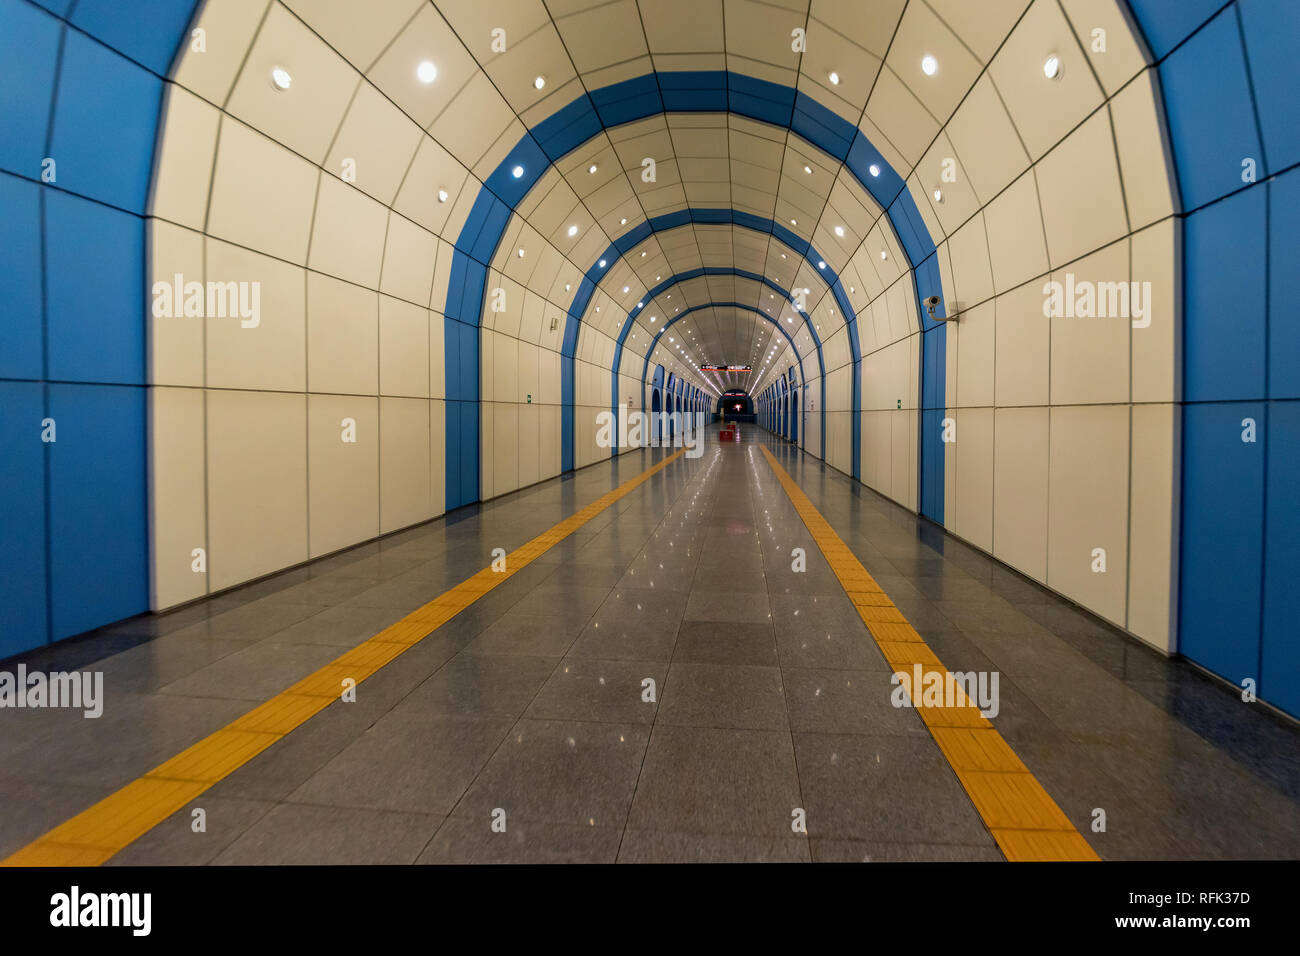 Vanishing point, Baikonur Metro Station, Alamty, Kazakhstan - Stock Image